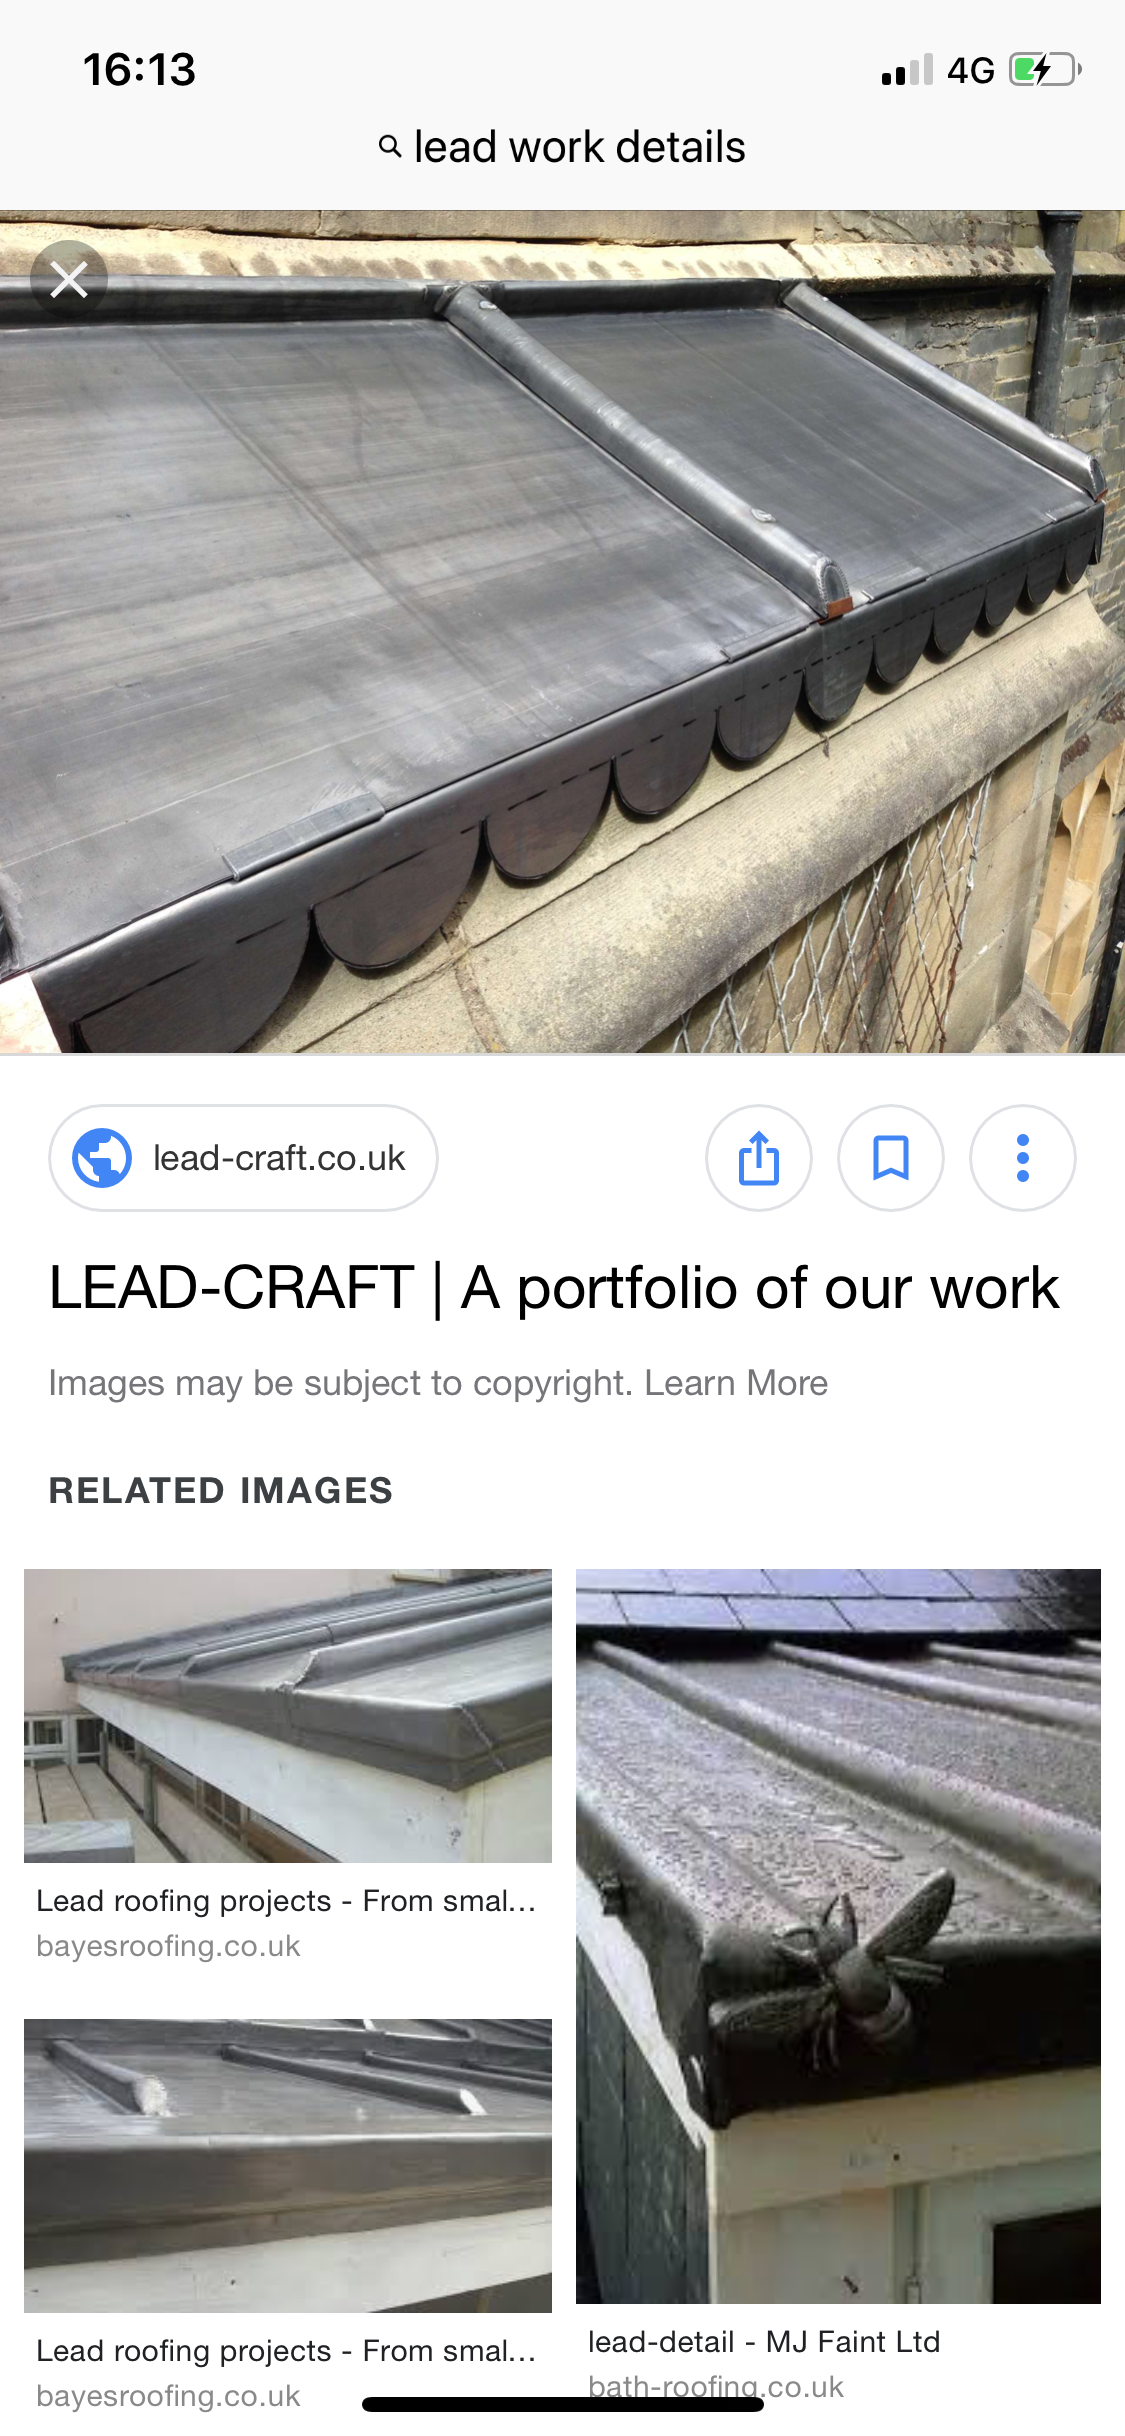 Pin By Stewart Mackinnon On Lead Roof Work Images Lead Roof Roofing